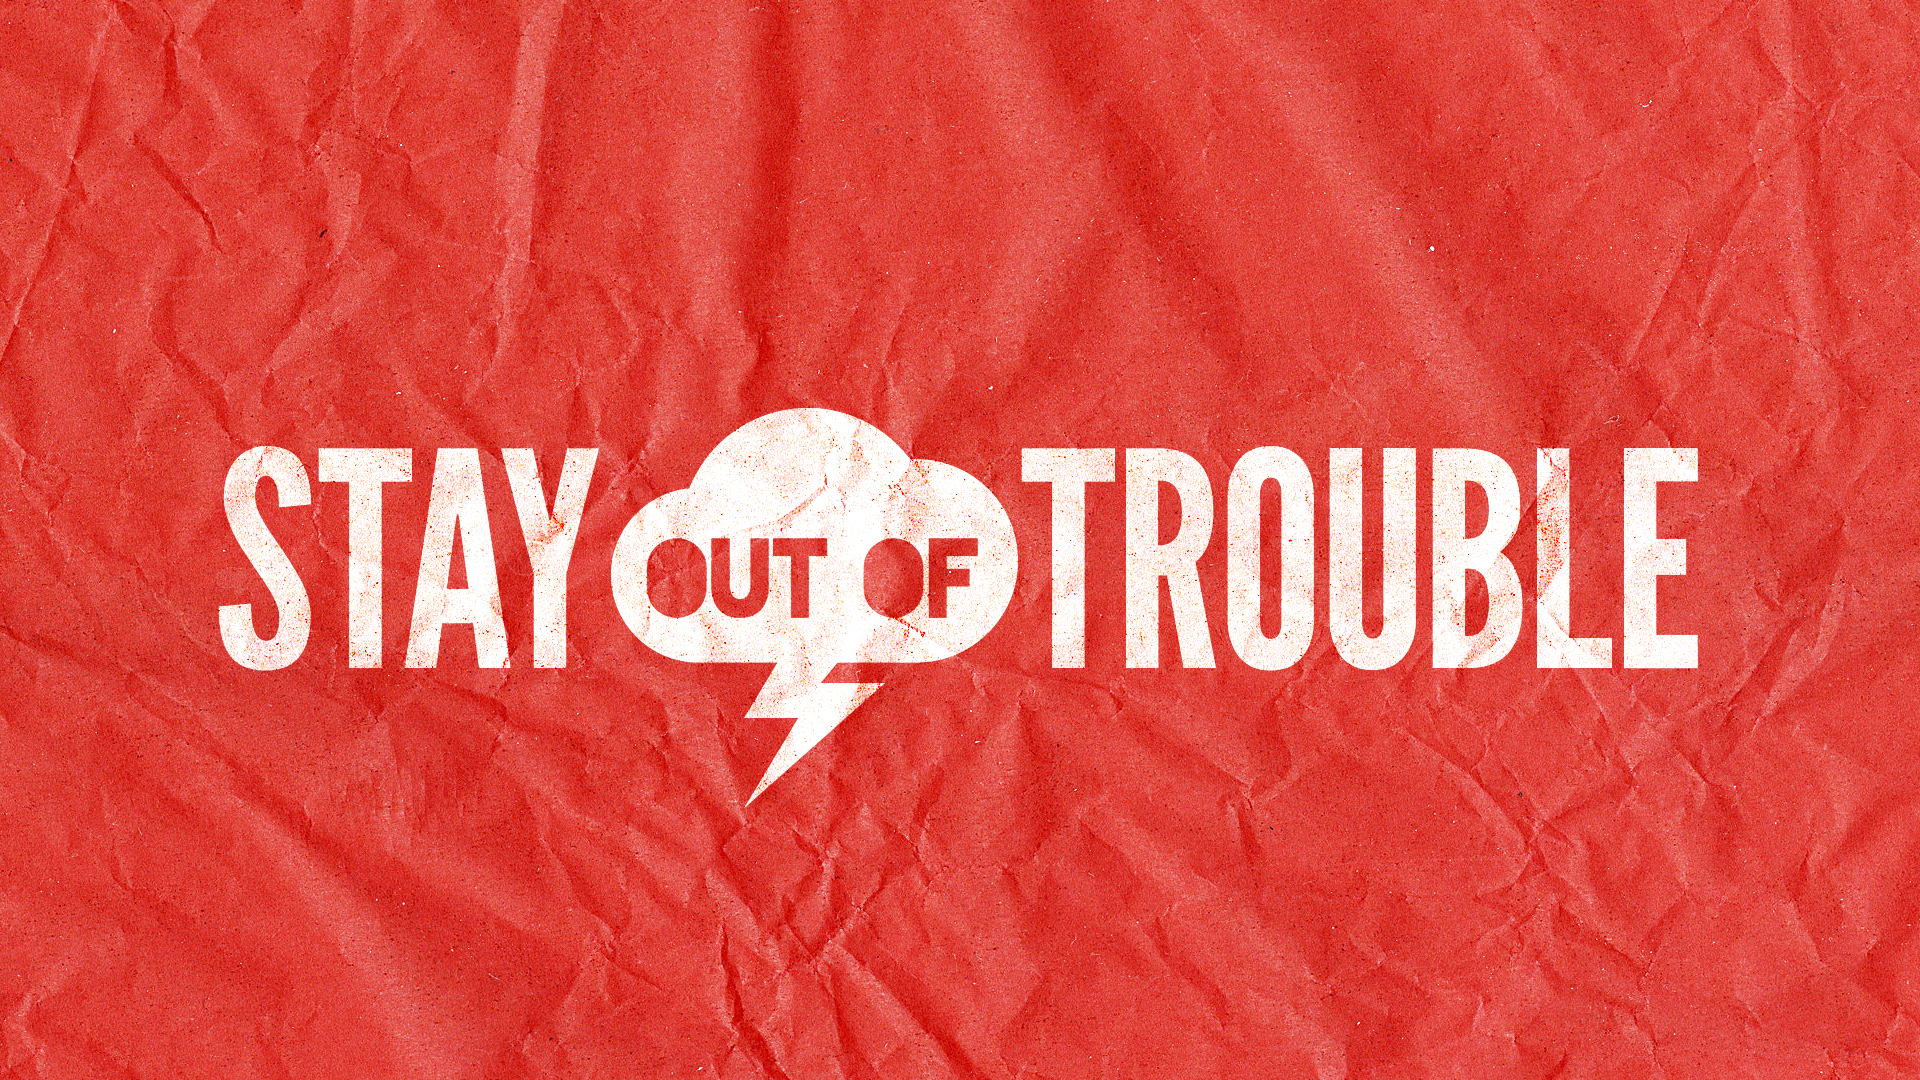 Stay out of trouble - Artboard 1 (1).jpg